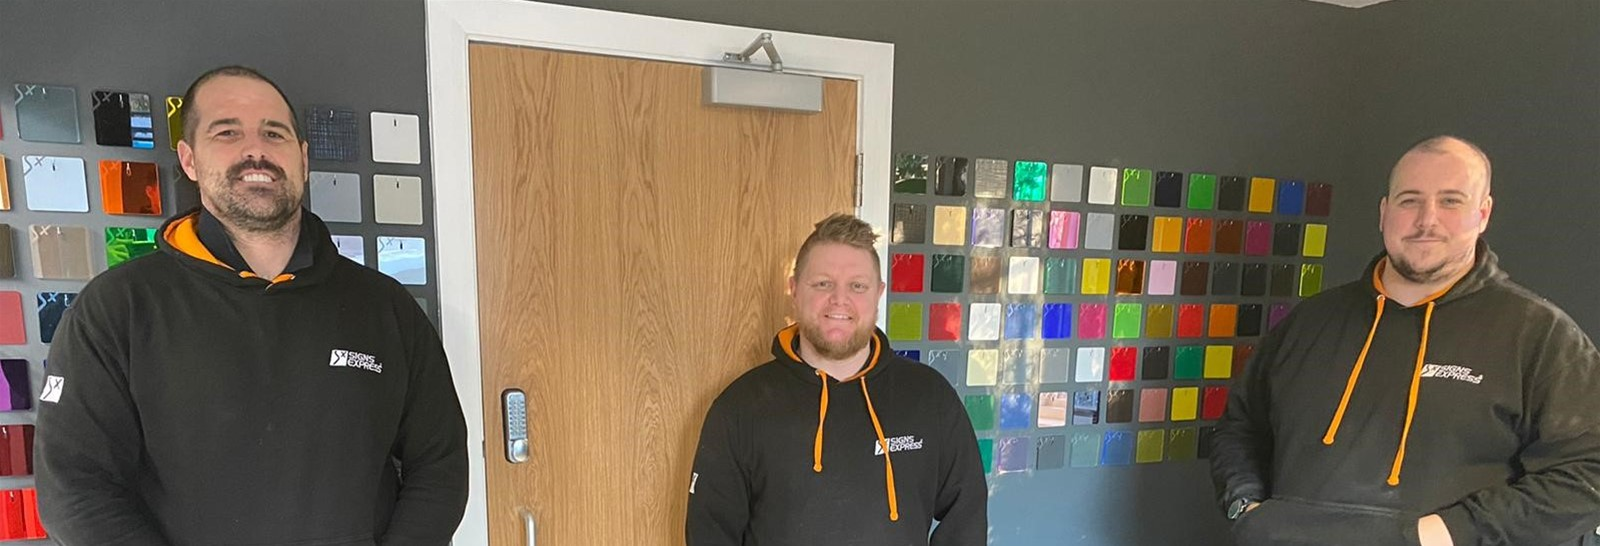 Paul, Dan and Rob pass their IPAF and PASMA qualifications - Stood in new Signage Unit in front of Perspex Acrylic Sample Wall